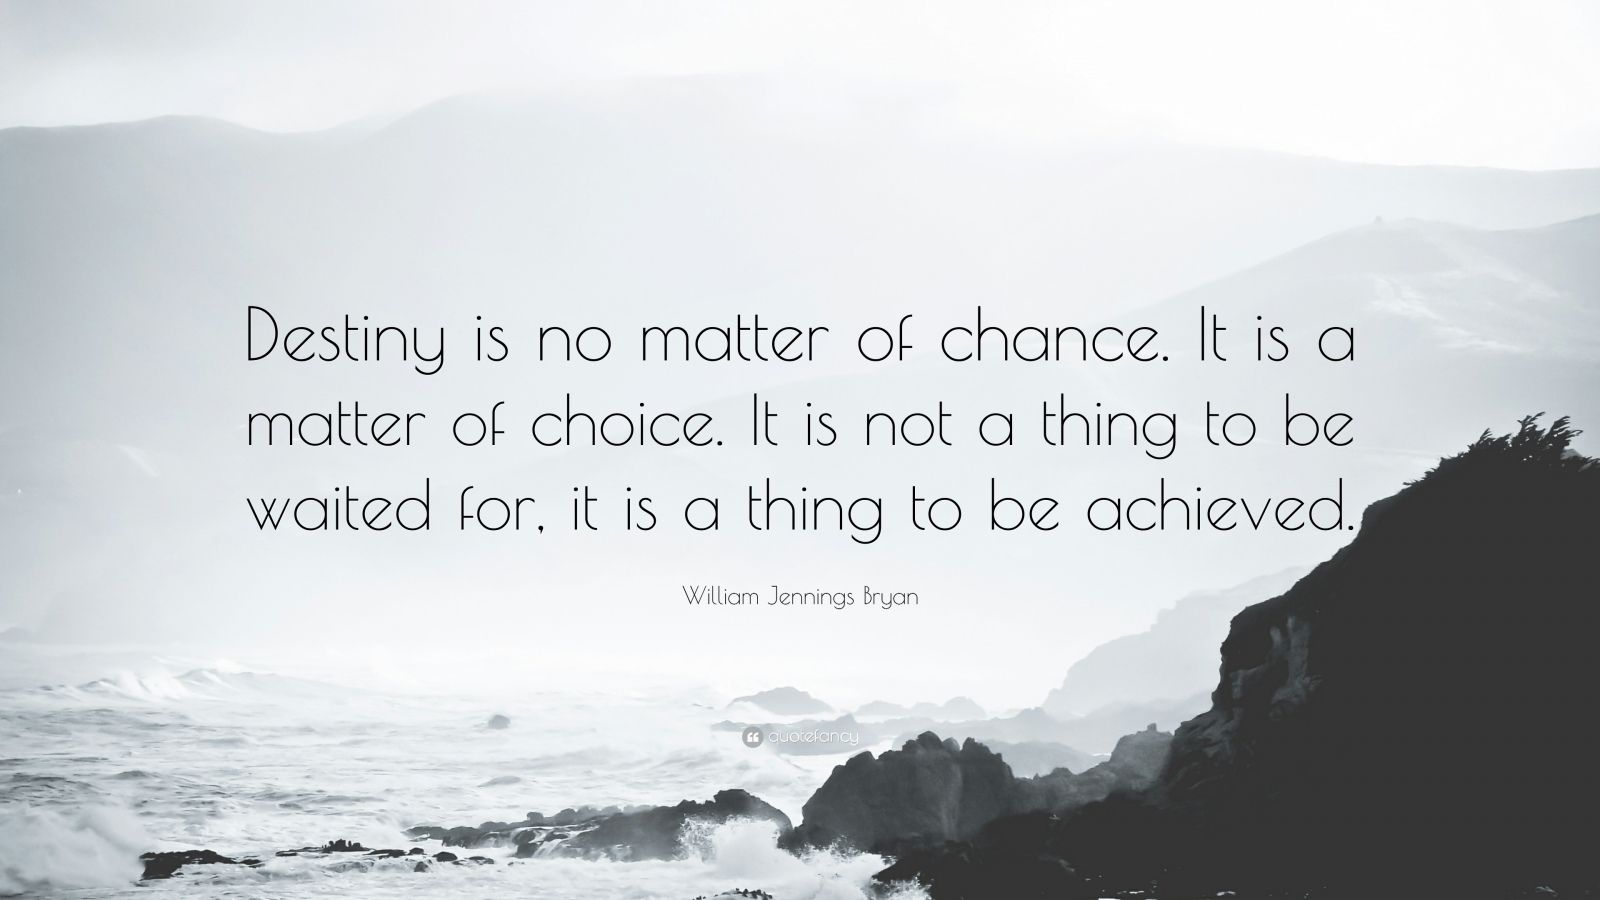 """William Jennings Bryan Quote: """"Destiny is no matter of chance. It is a matter of choice. It is not a thing to be waited for, it is a thing to be achieved."""""""